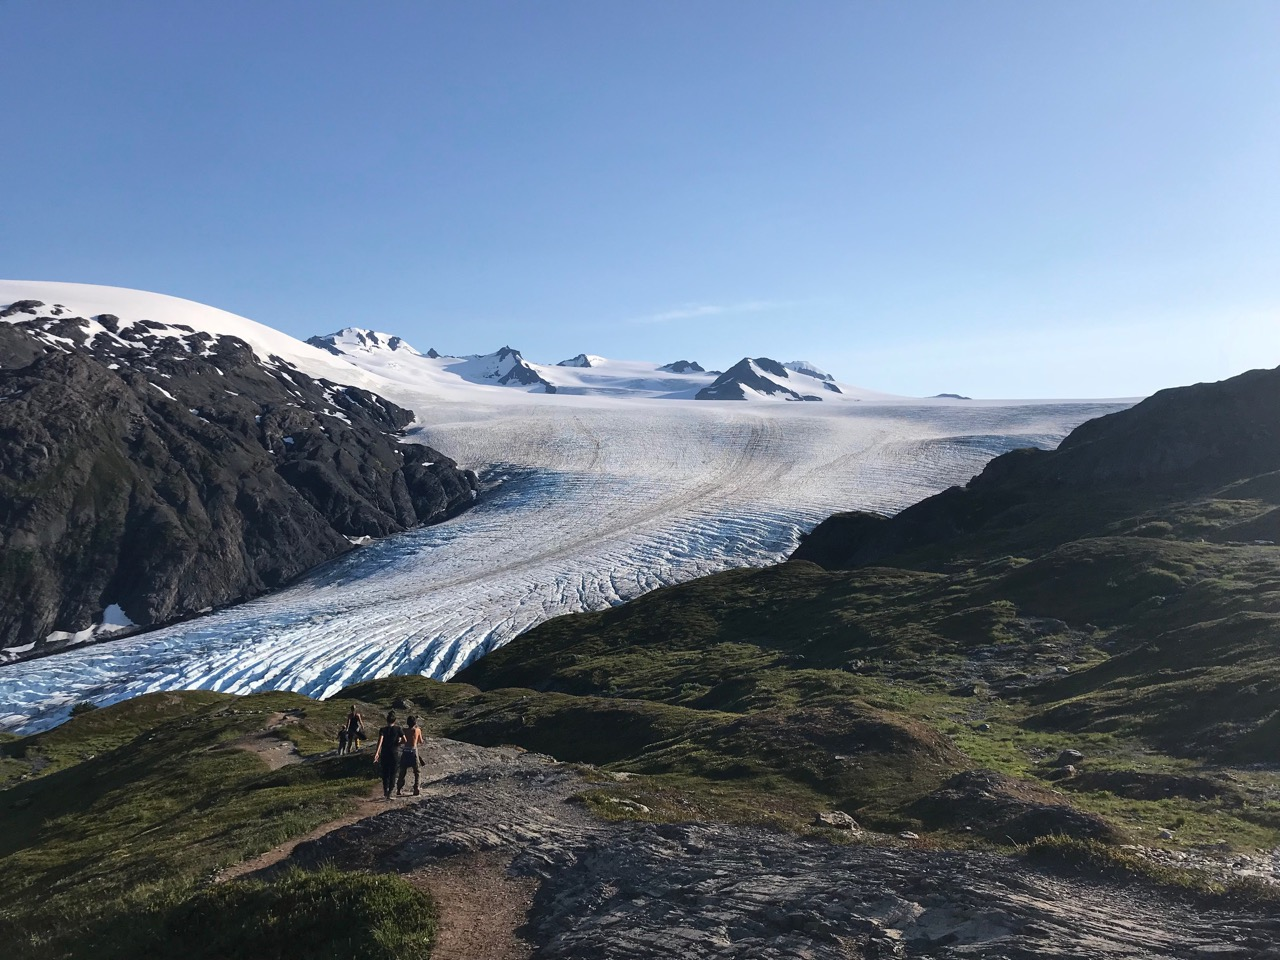 Exit Glacier in all its glory.